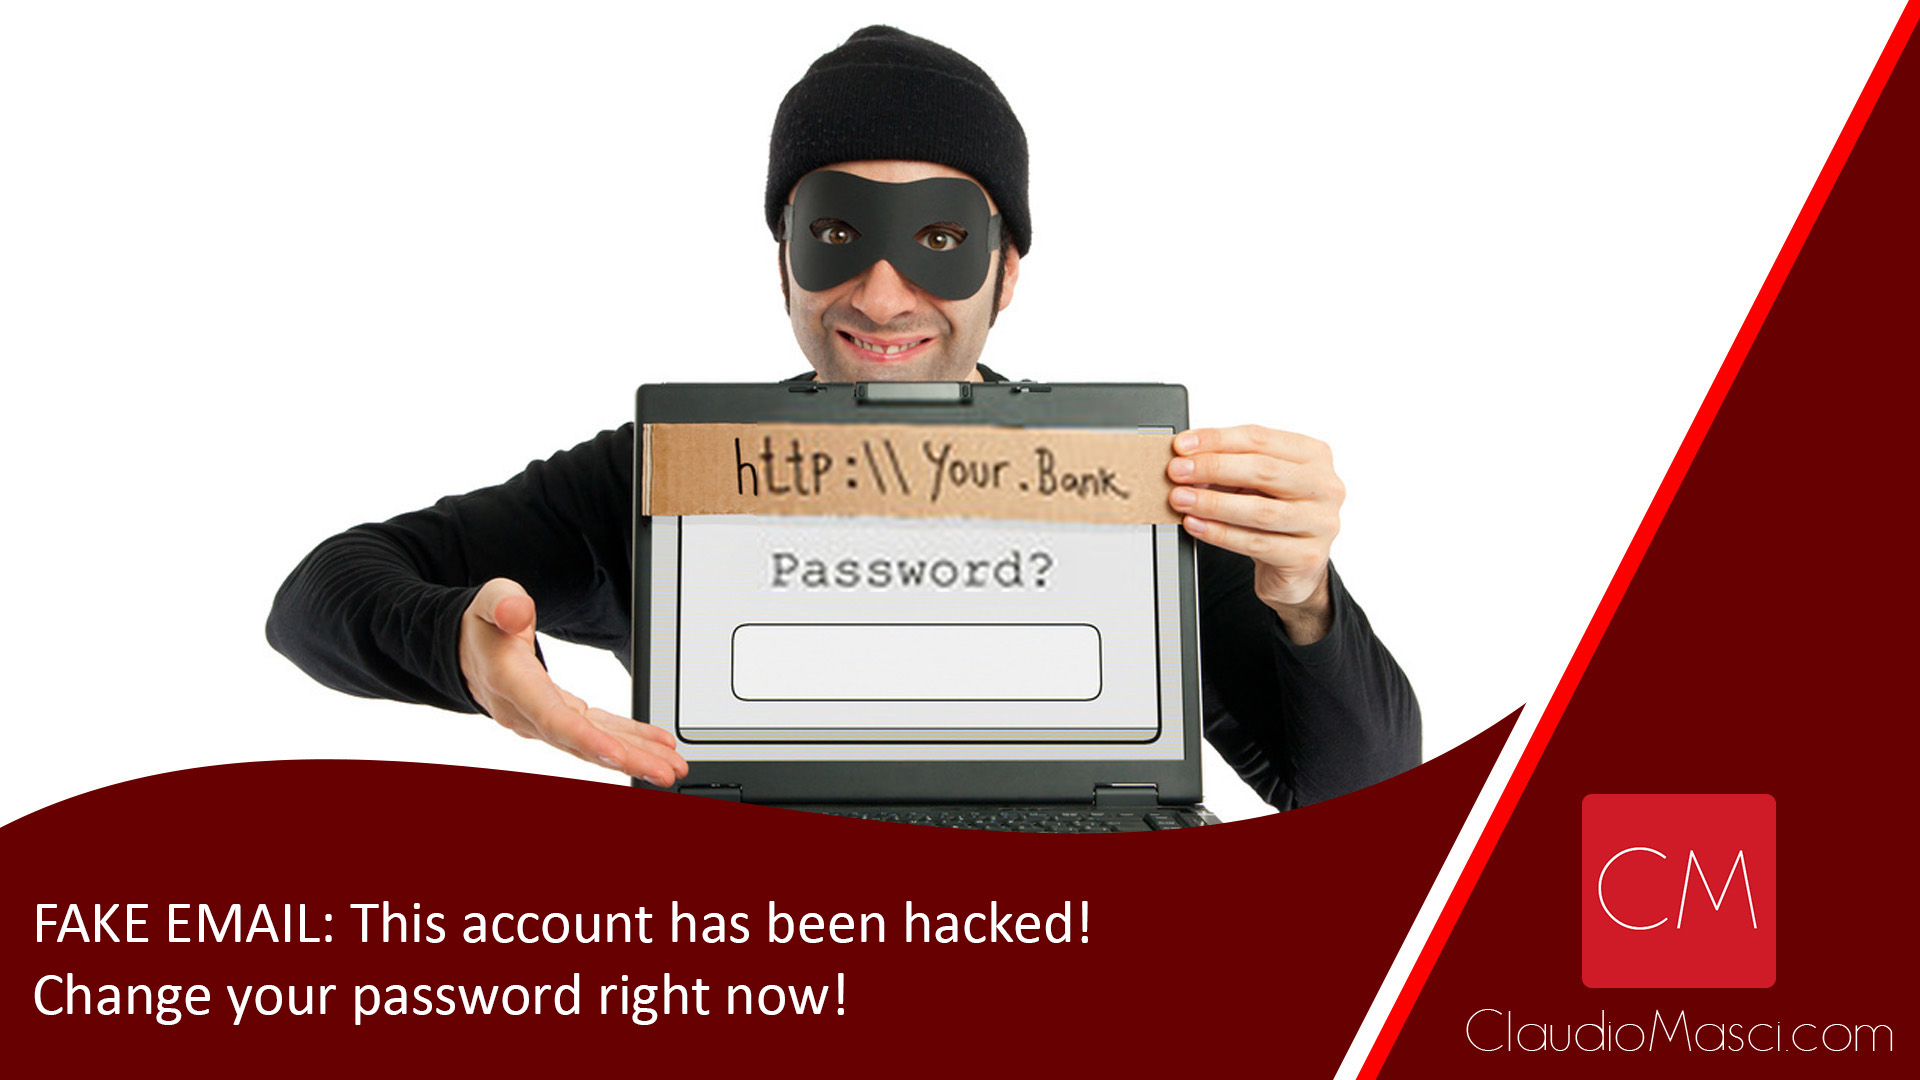 Email account password fake with Fake Email